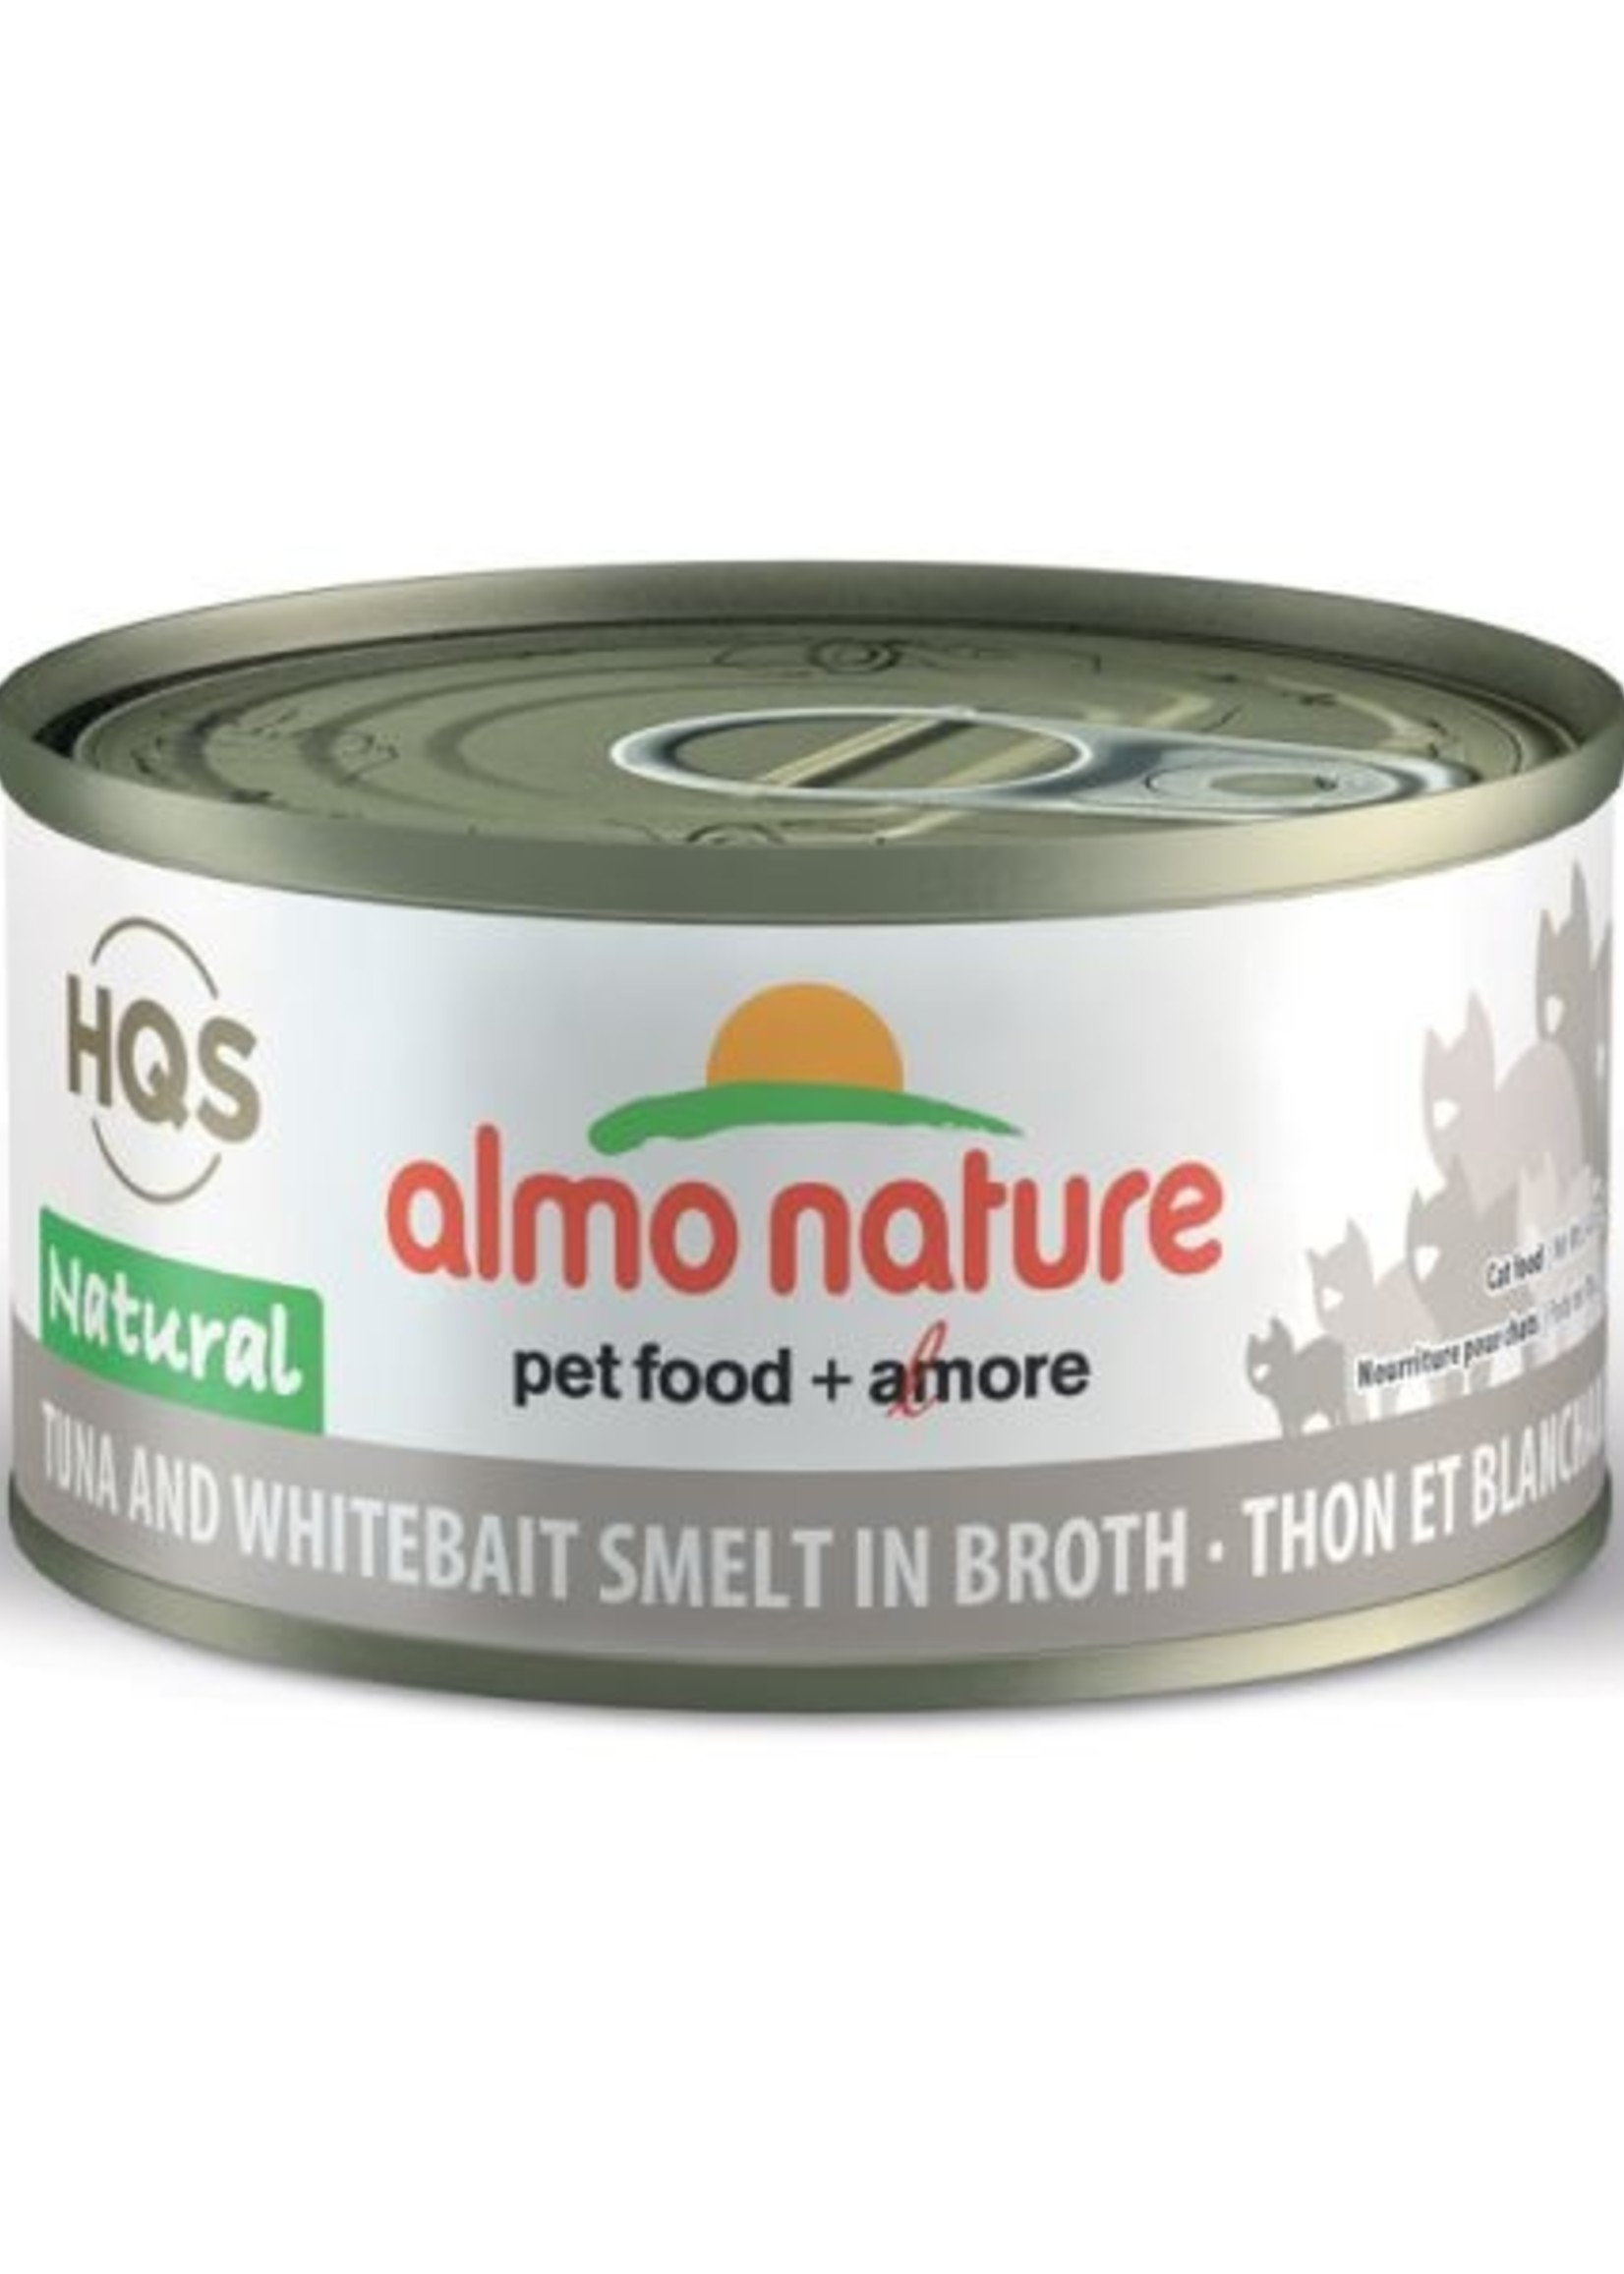 Almo Nature© Almo Nature HQS Natural Tuna and Whitebait Smelt in Broth 70g